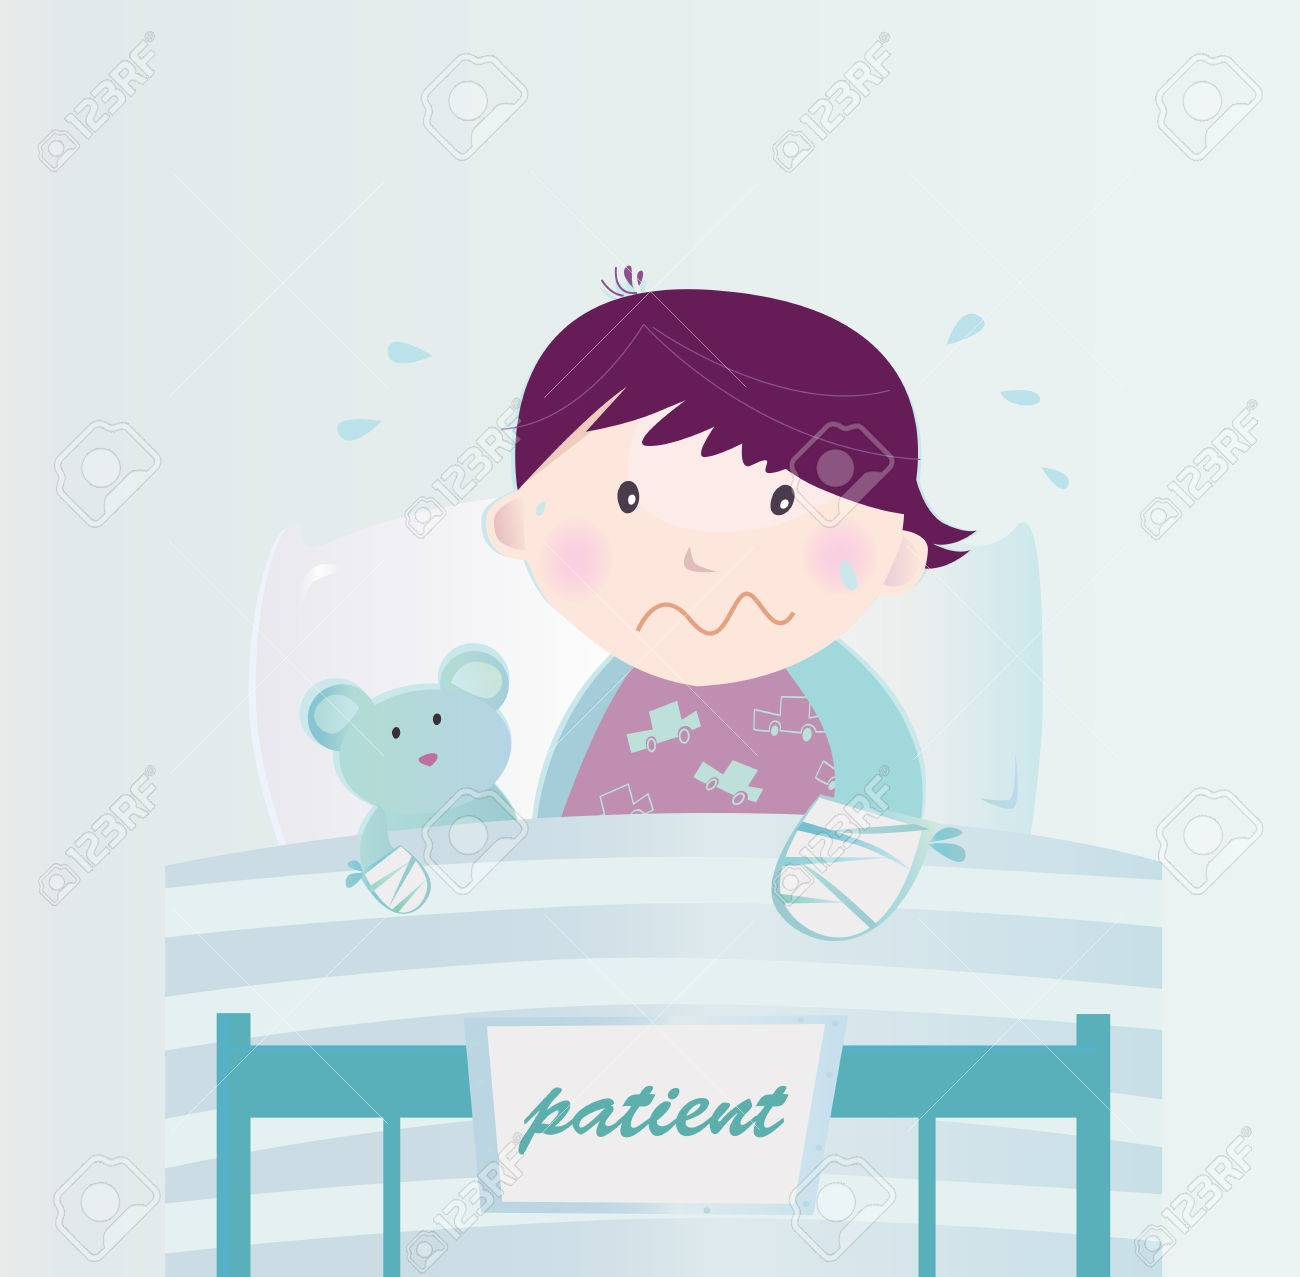 Ill child with broken hand in the hospital. Cute small child lying in the hospital bed with illness. Vector cartoon Illustration of child with broken hand. Stock Vector - 6444723